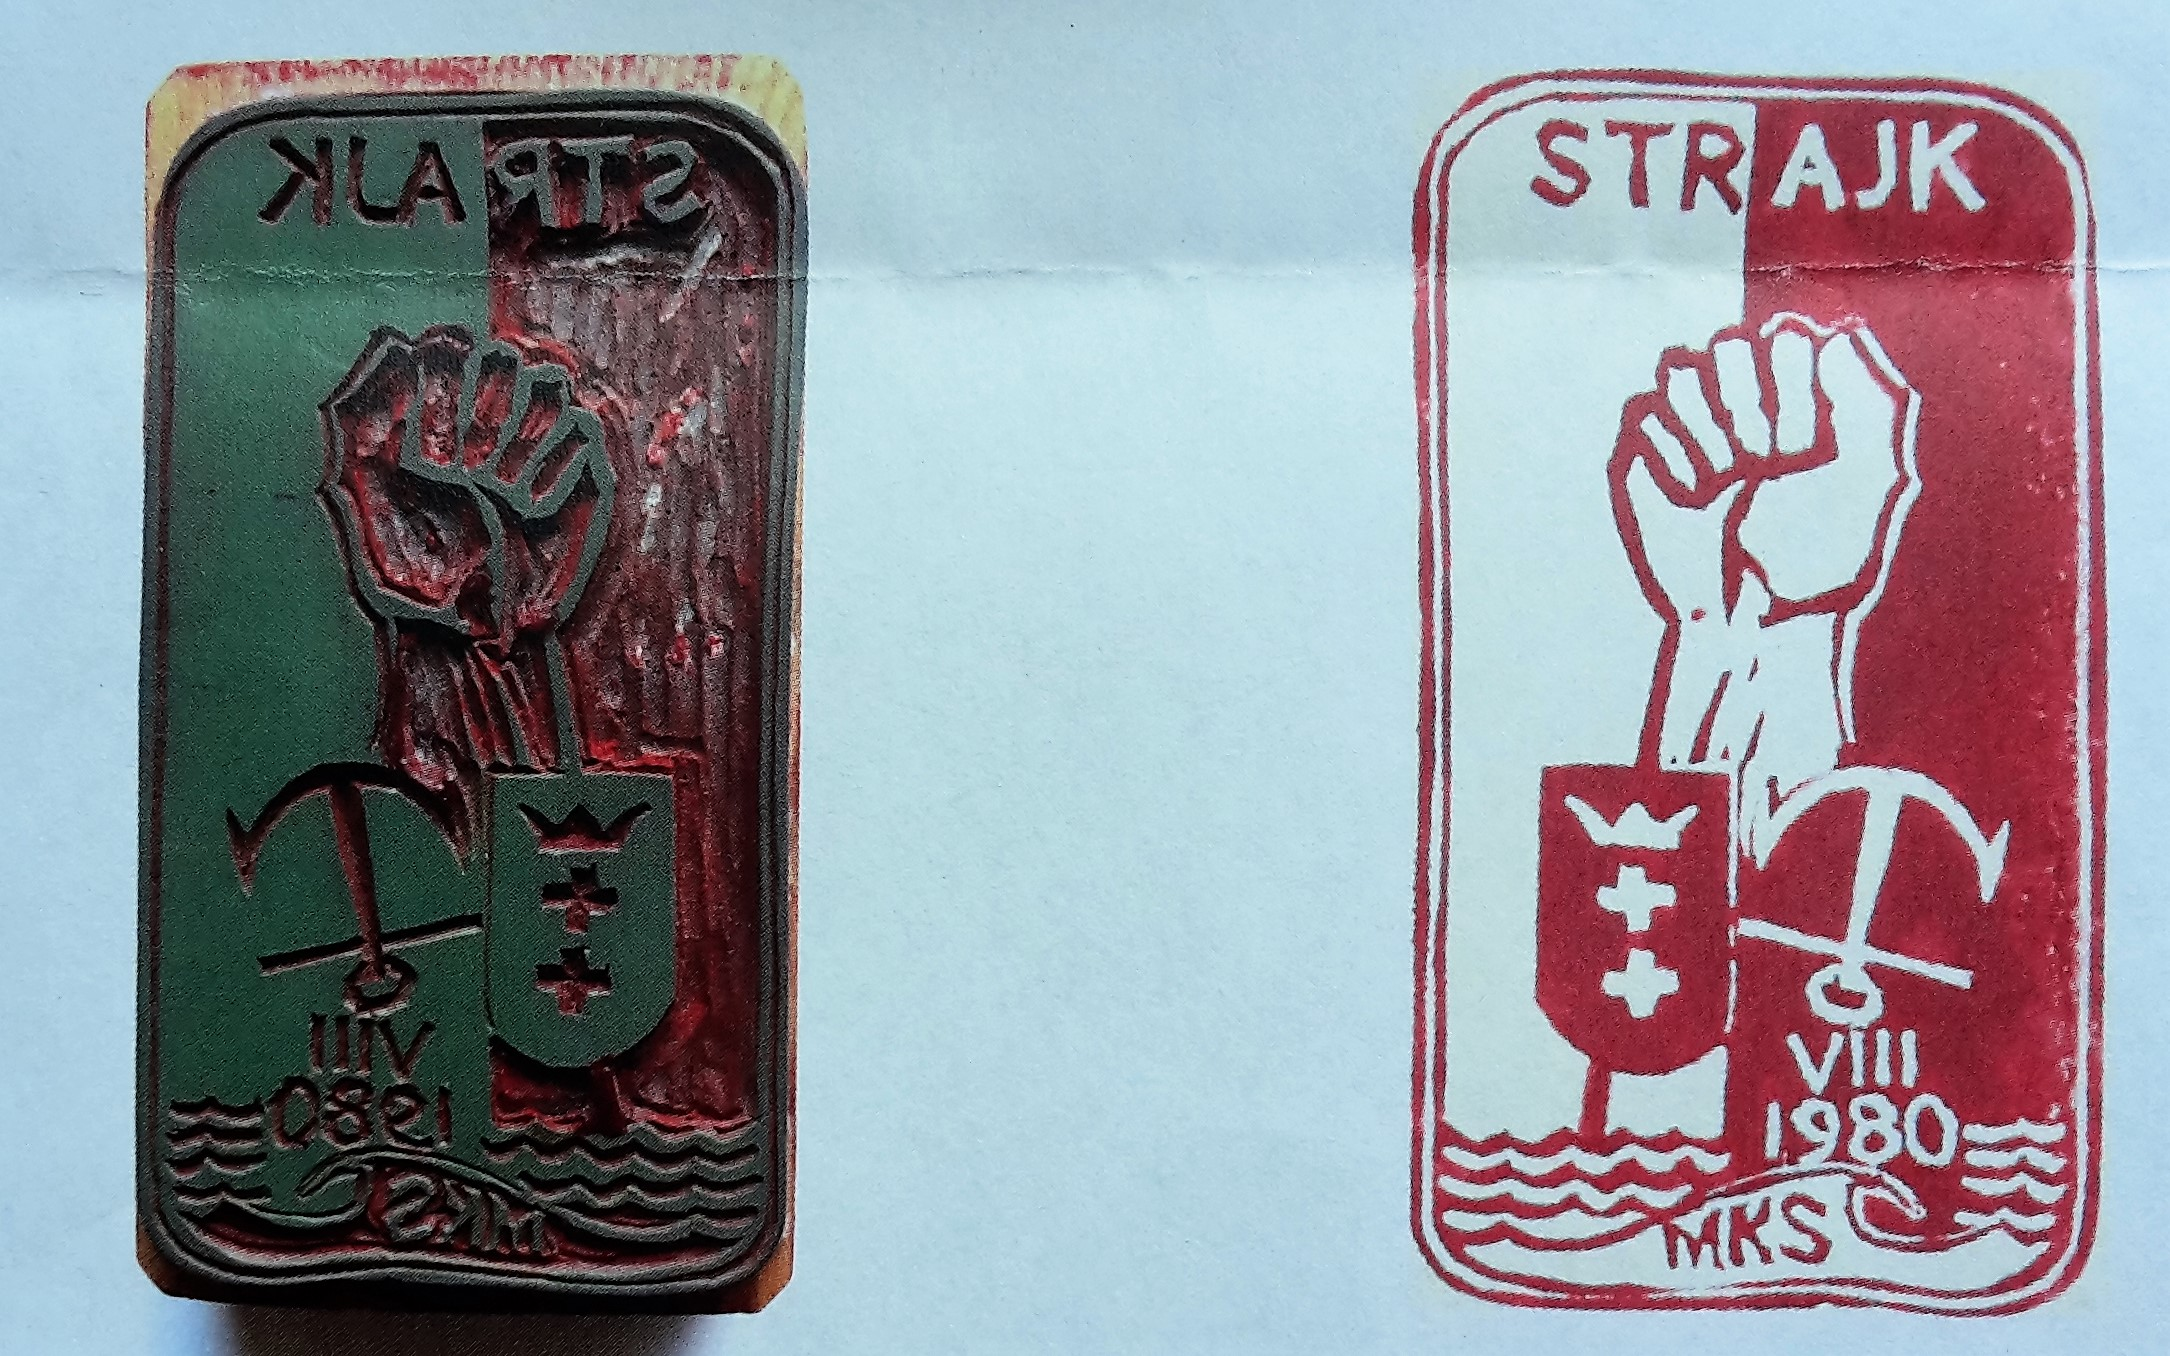 The first seal created by Józef Figiela in August 1980 during the strikes in the Gdansk Shipyard. The picture shows an original linocut and the copy in a form of the stamp.